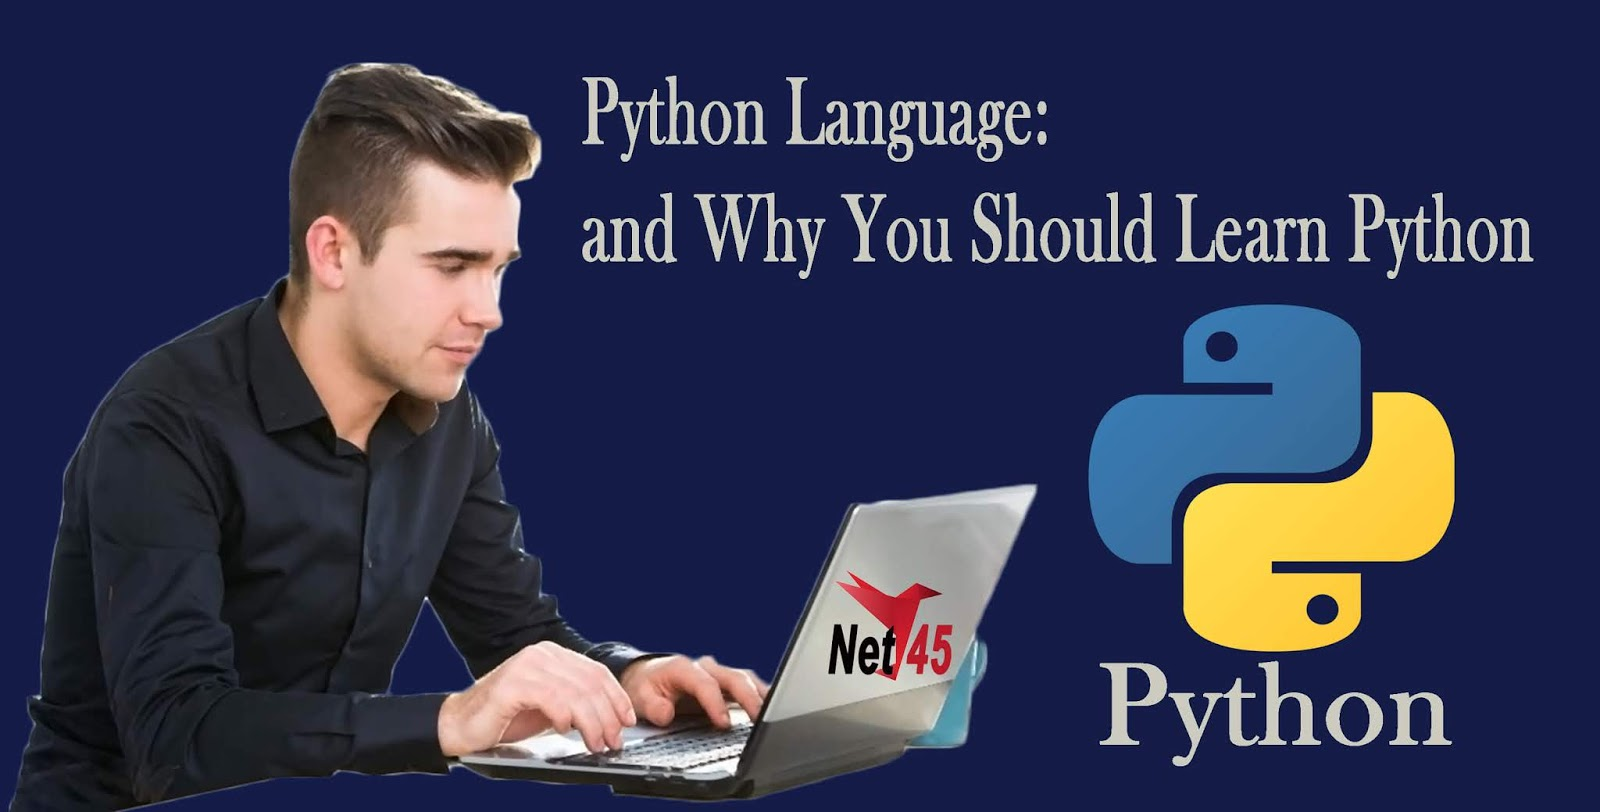 learn python,python,python tutorial,python programming,python for beginners,python tutorial for beginners,learn python programming,why you should learn python programming,python (programming language),why learn python,python course,python language,why should i learn python,python programming tutorial,python programming language,why you should learn python,why you should learn python in 2018,python 3